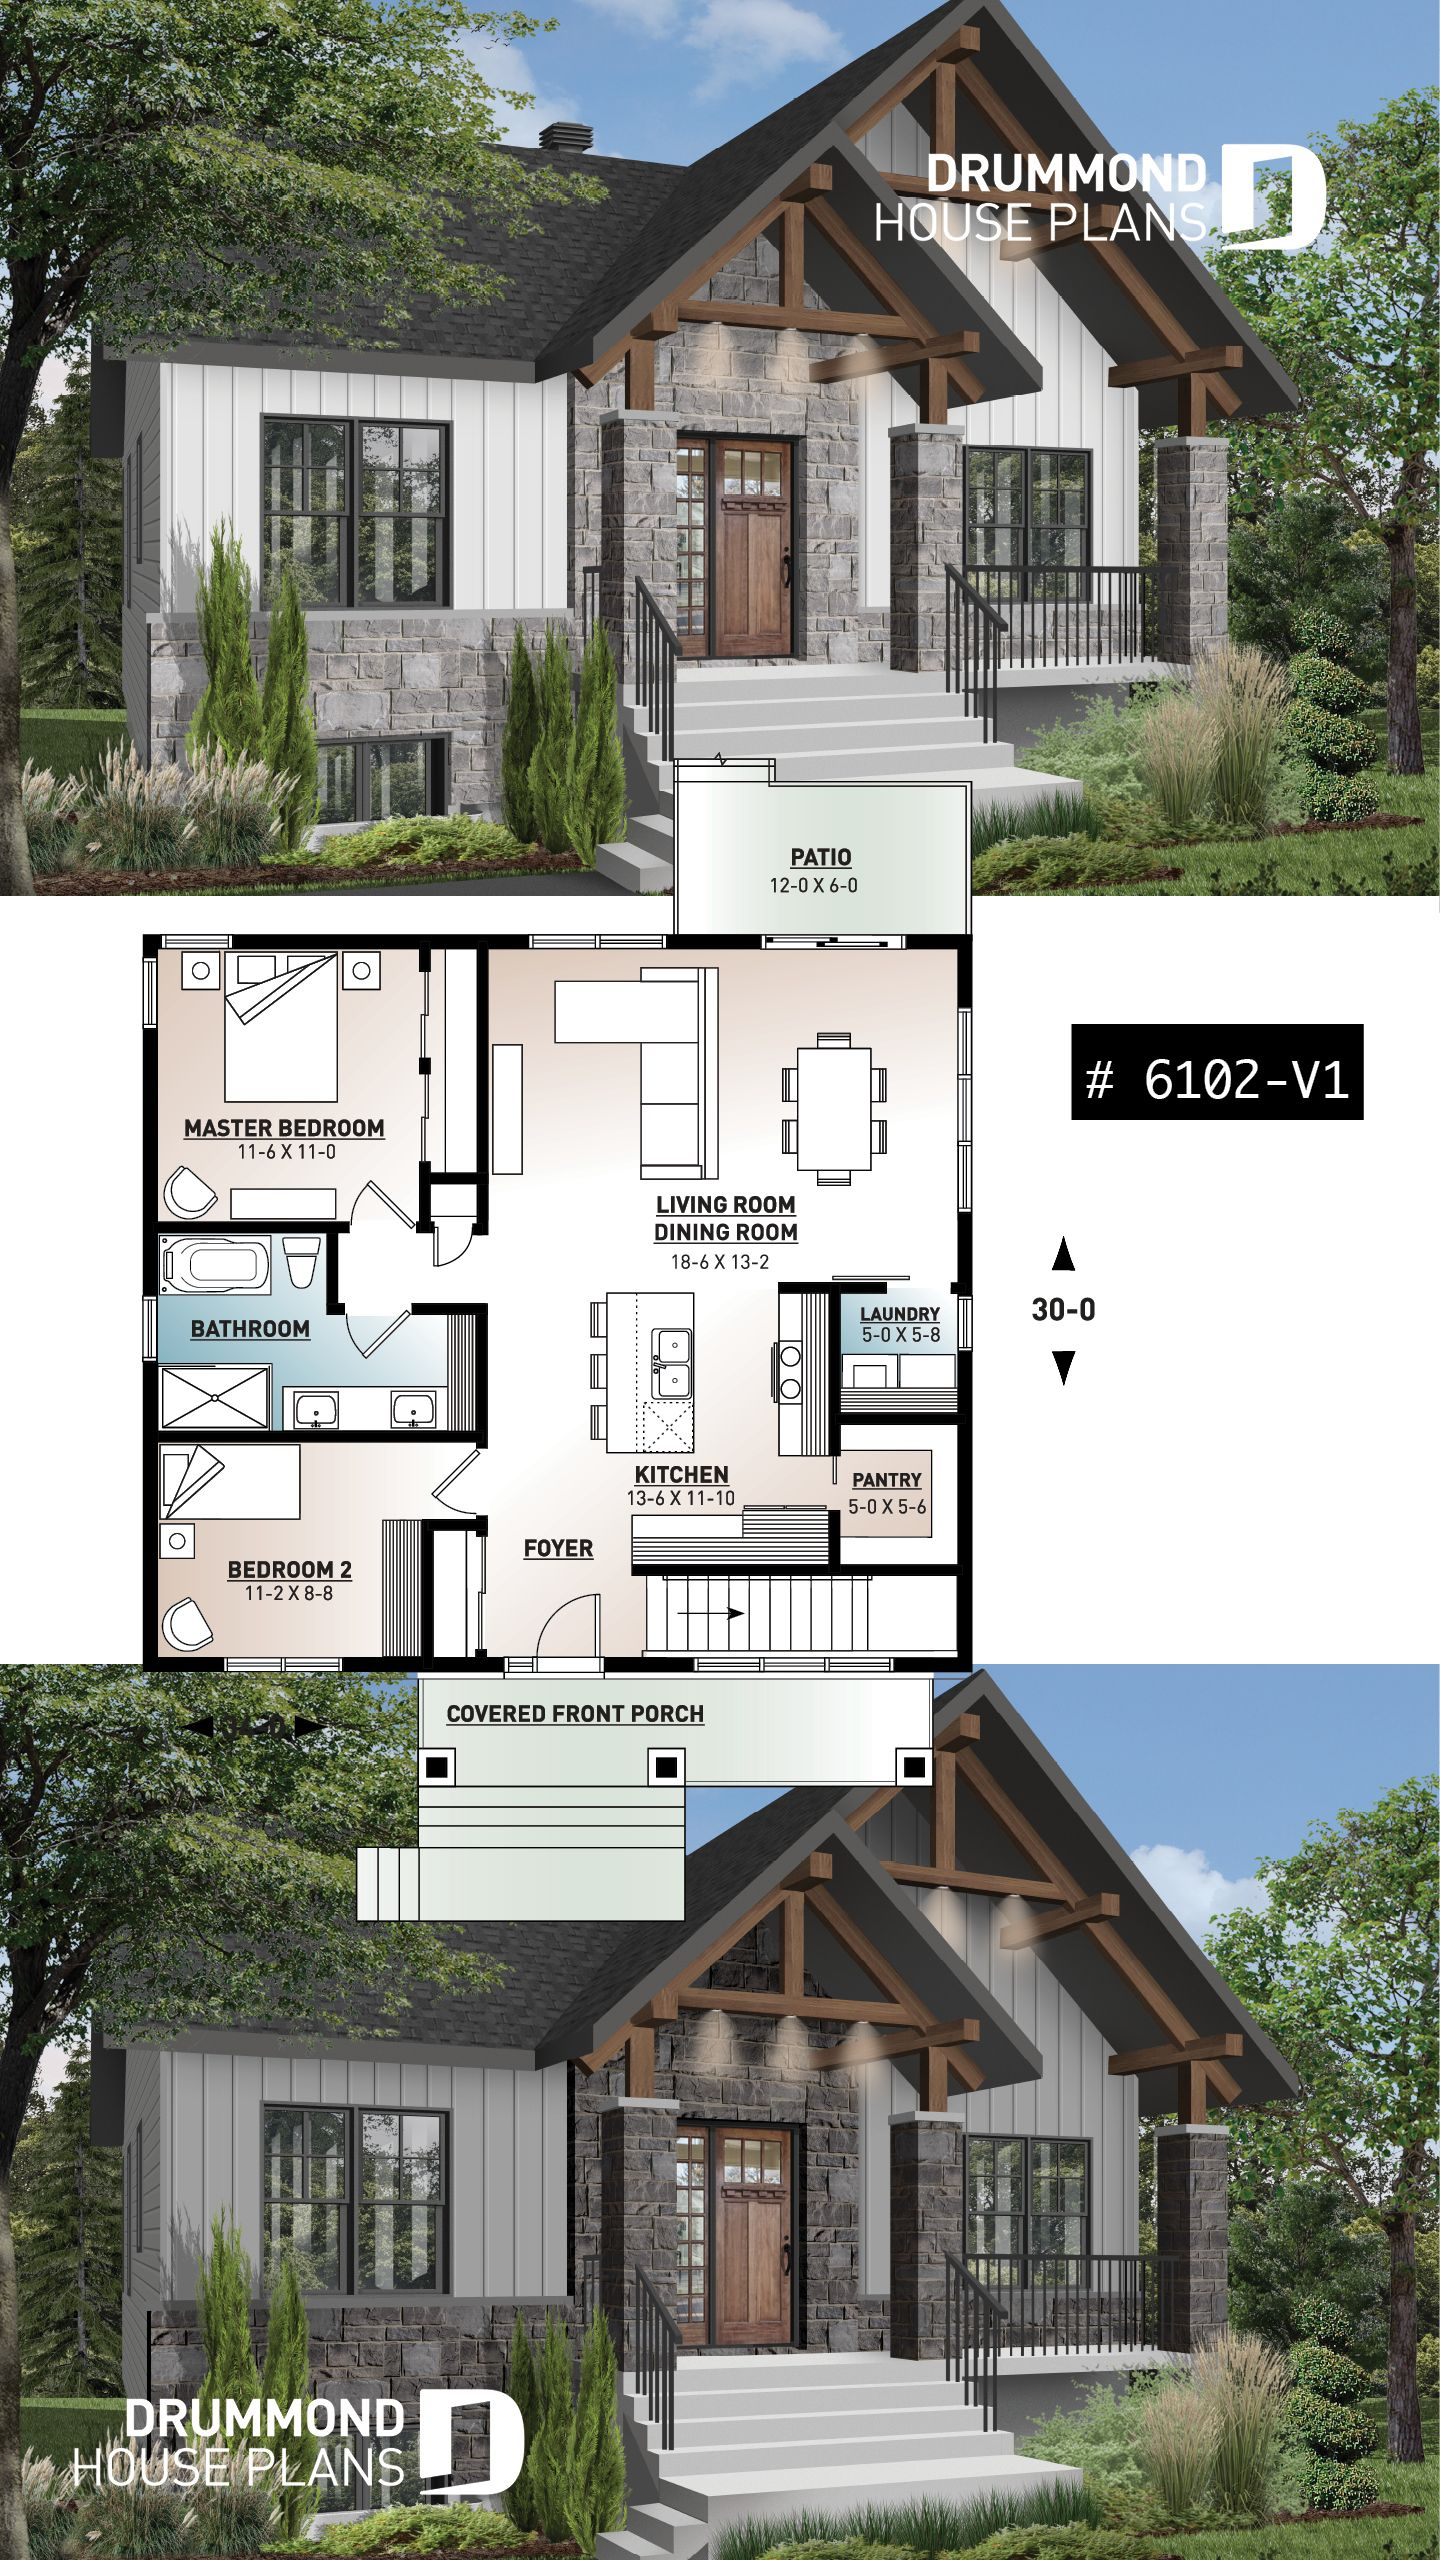 Discover The Plan 6102 V1 Nordika 2 Which Will Please You For Its 2 Bedrooms And For Its Craftsman Northwest Styles Craftsman Style House Plans Small Craftsman Style House Plans Craftsman House Plans